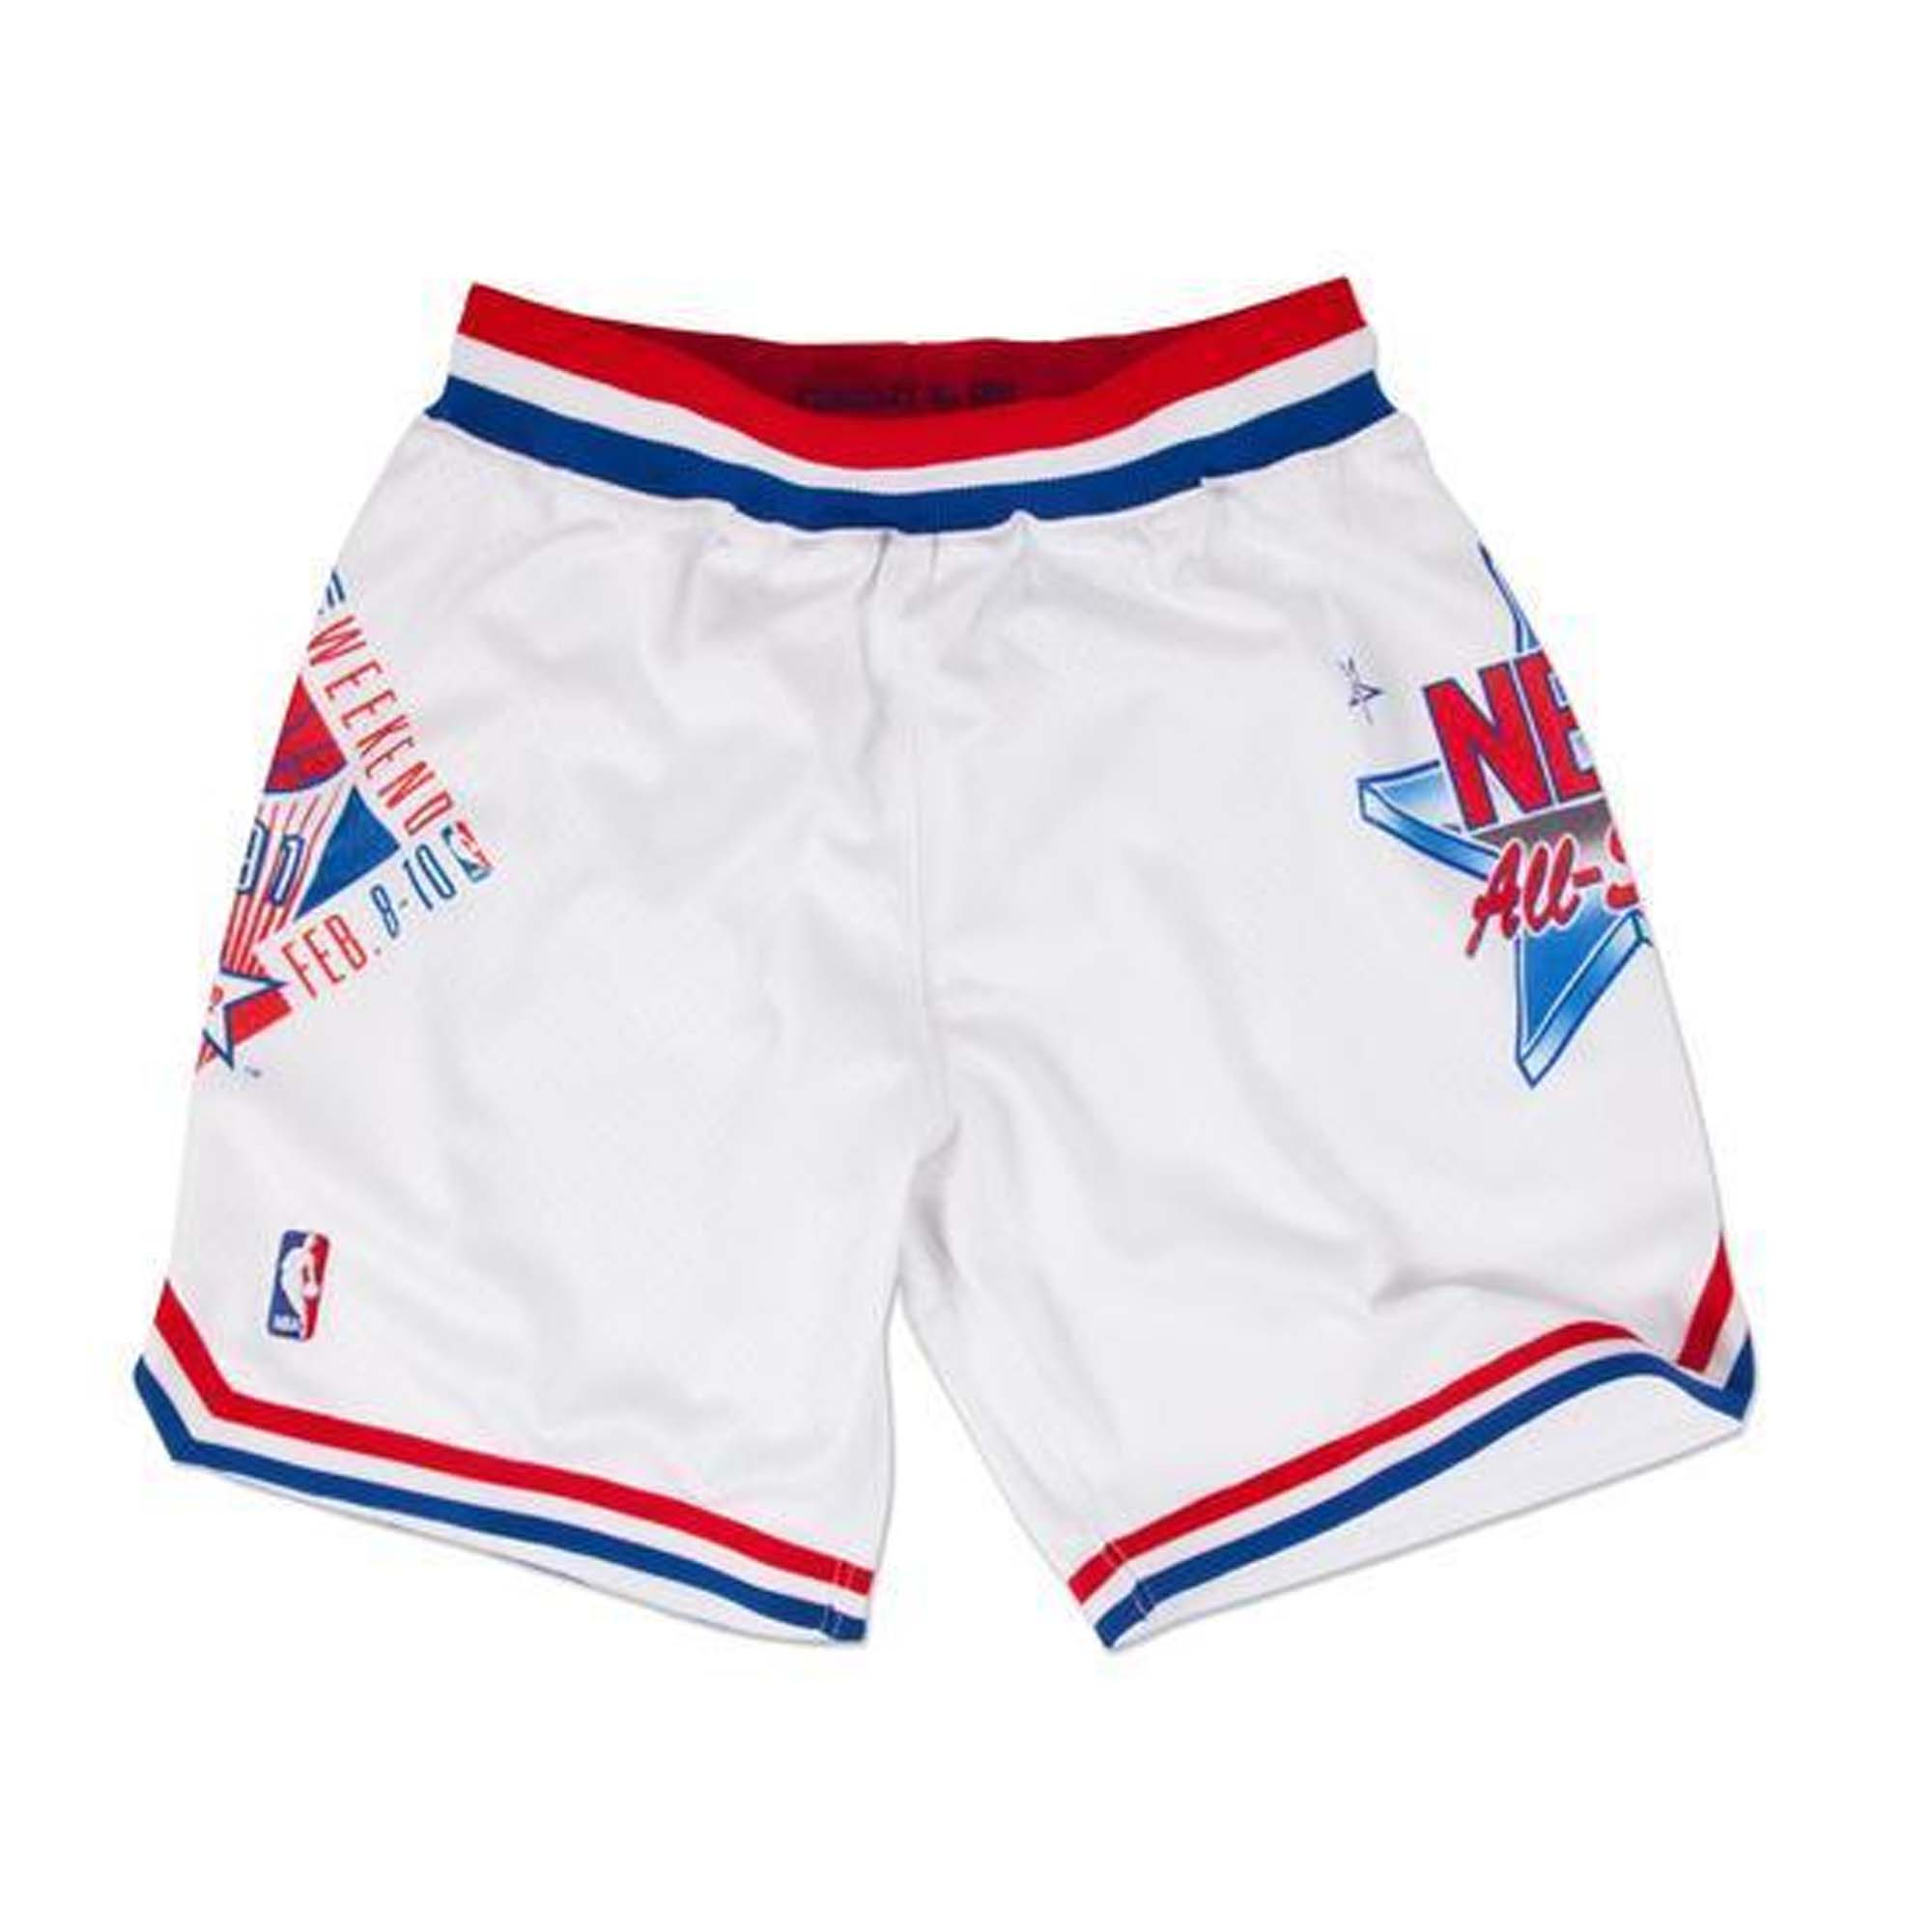 Mitchell   Ness 1991 NBA All Star Game East Authentic Shorts in White 4034aeaf4